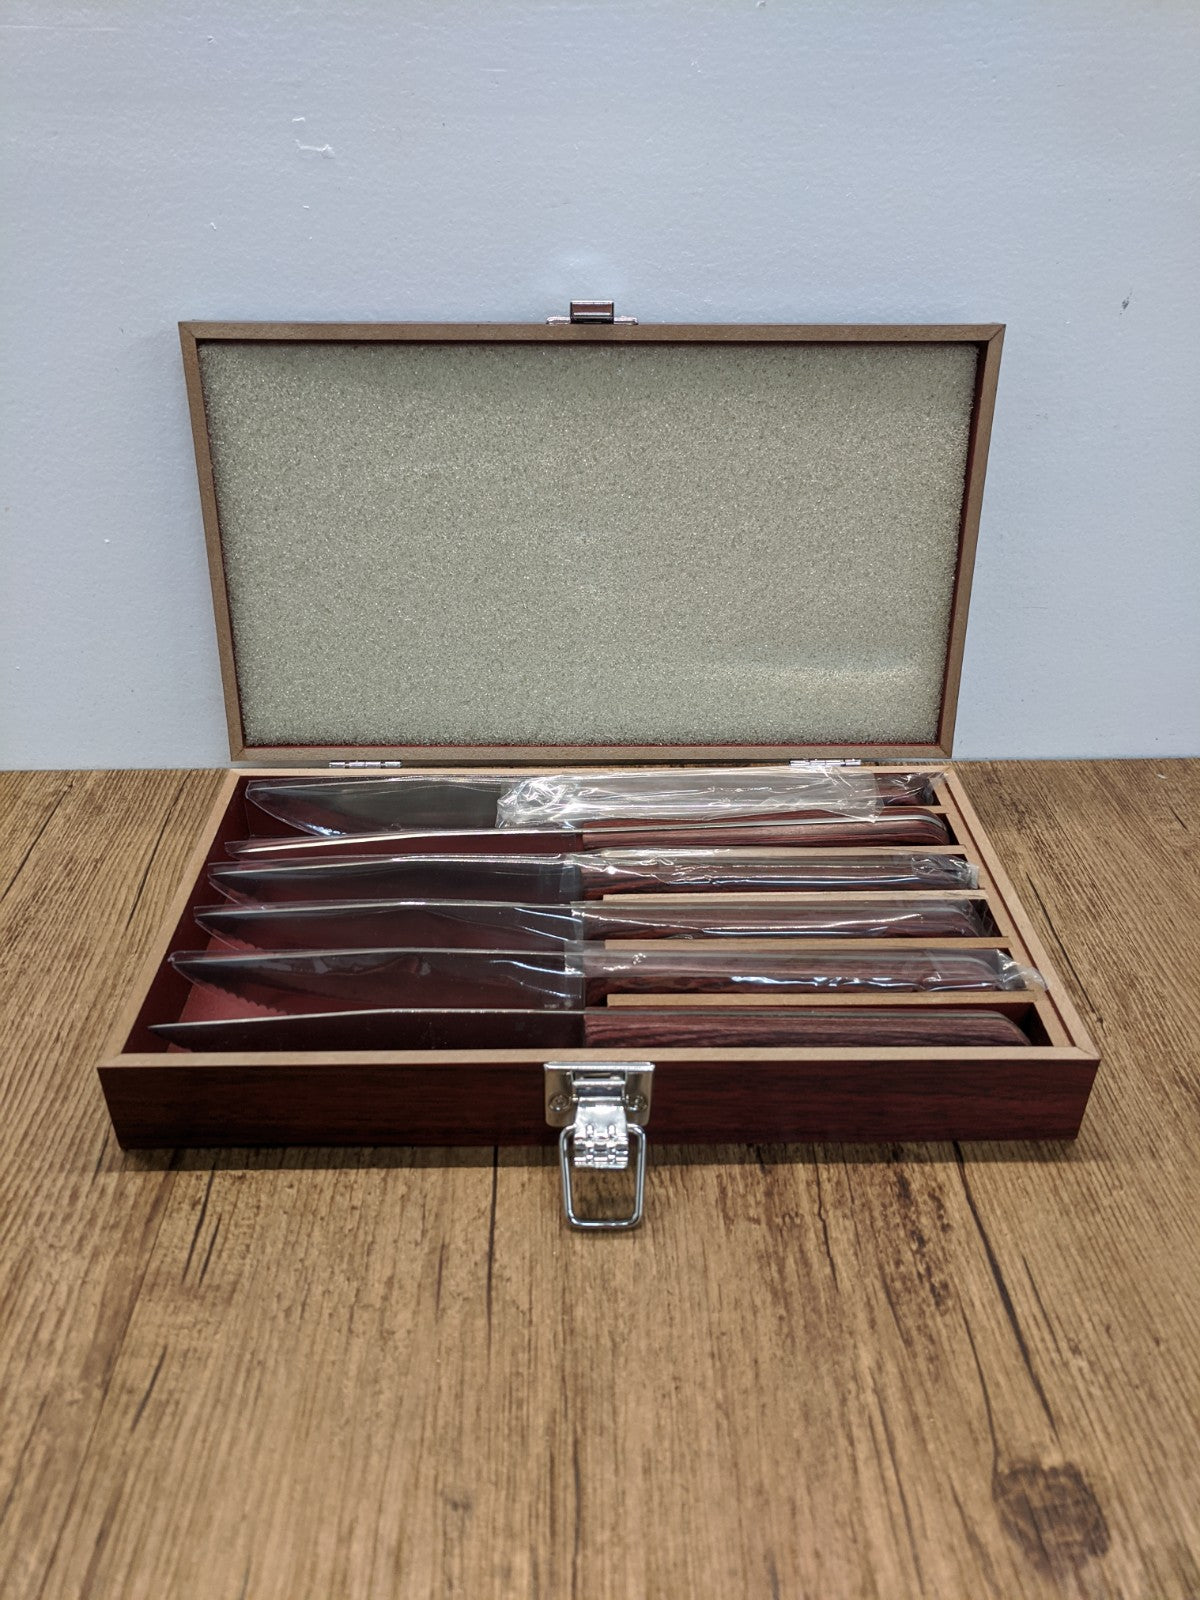 (6) Stainless Steel Steak Knives with Case